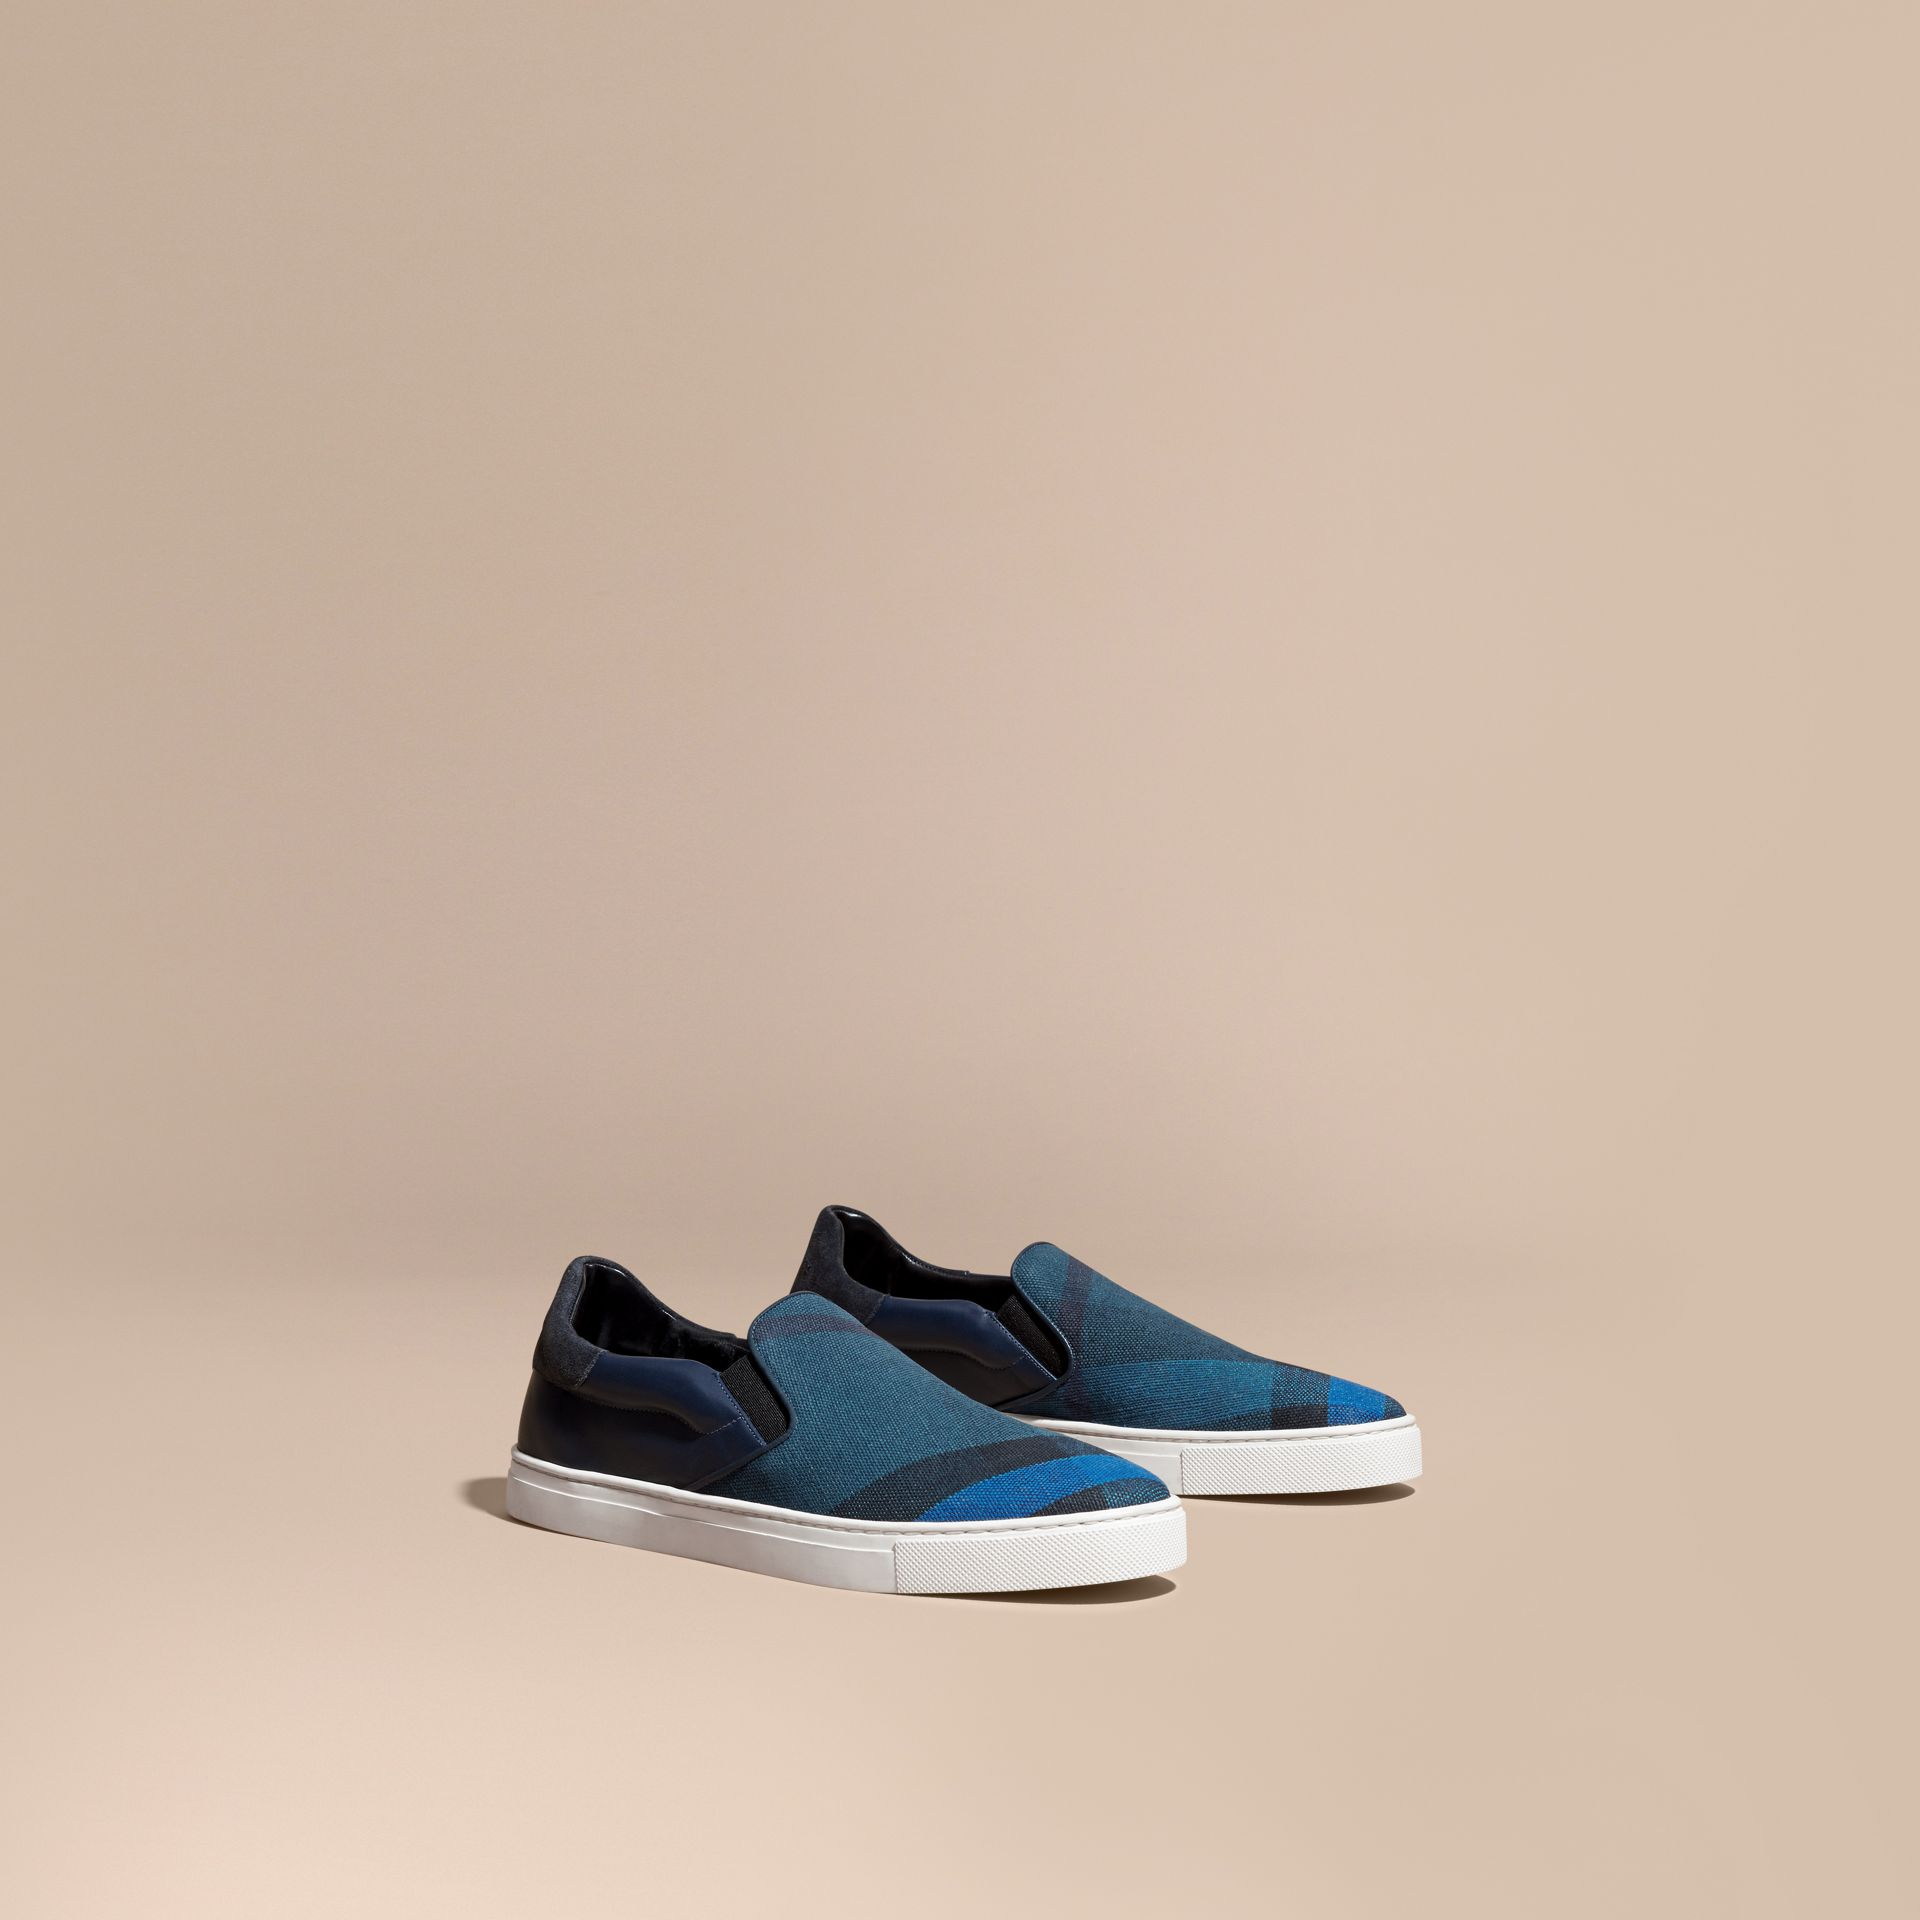 Ultramarine blue/blk Canvas Check and Leather Slip-on Trainers Ultramarine Blue/blk - gallery image 1